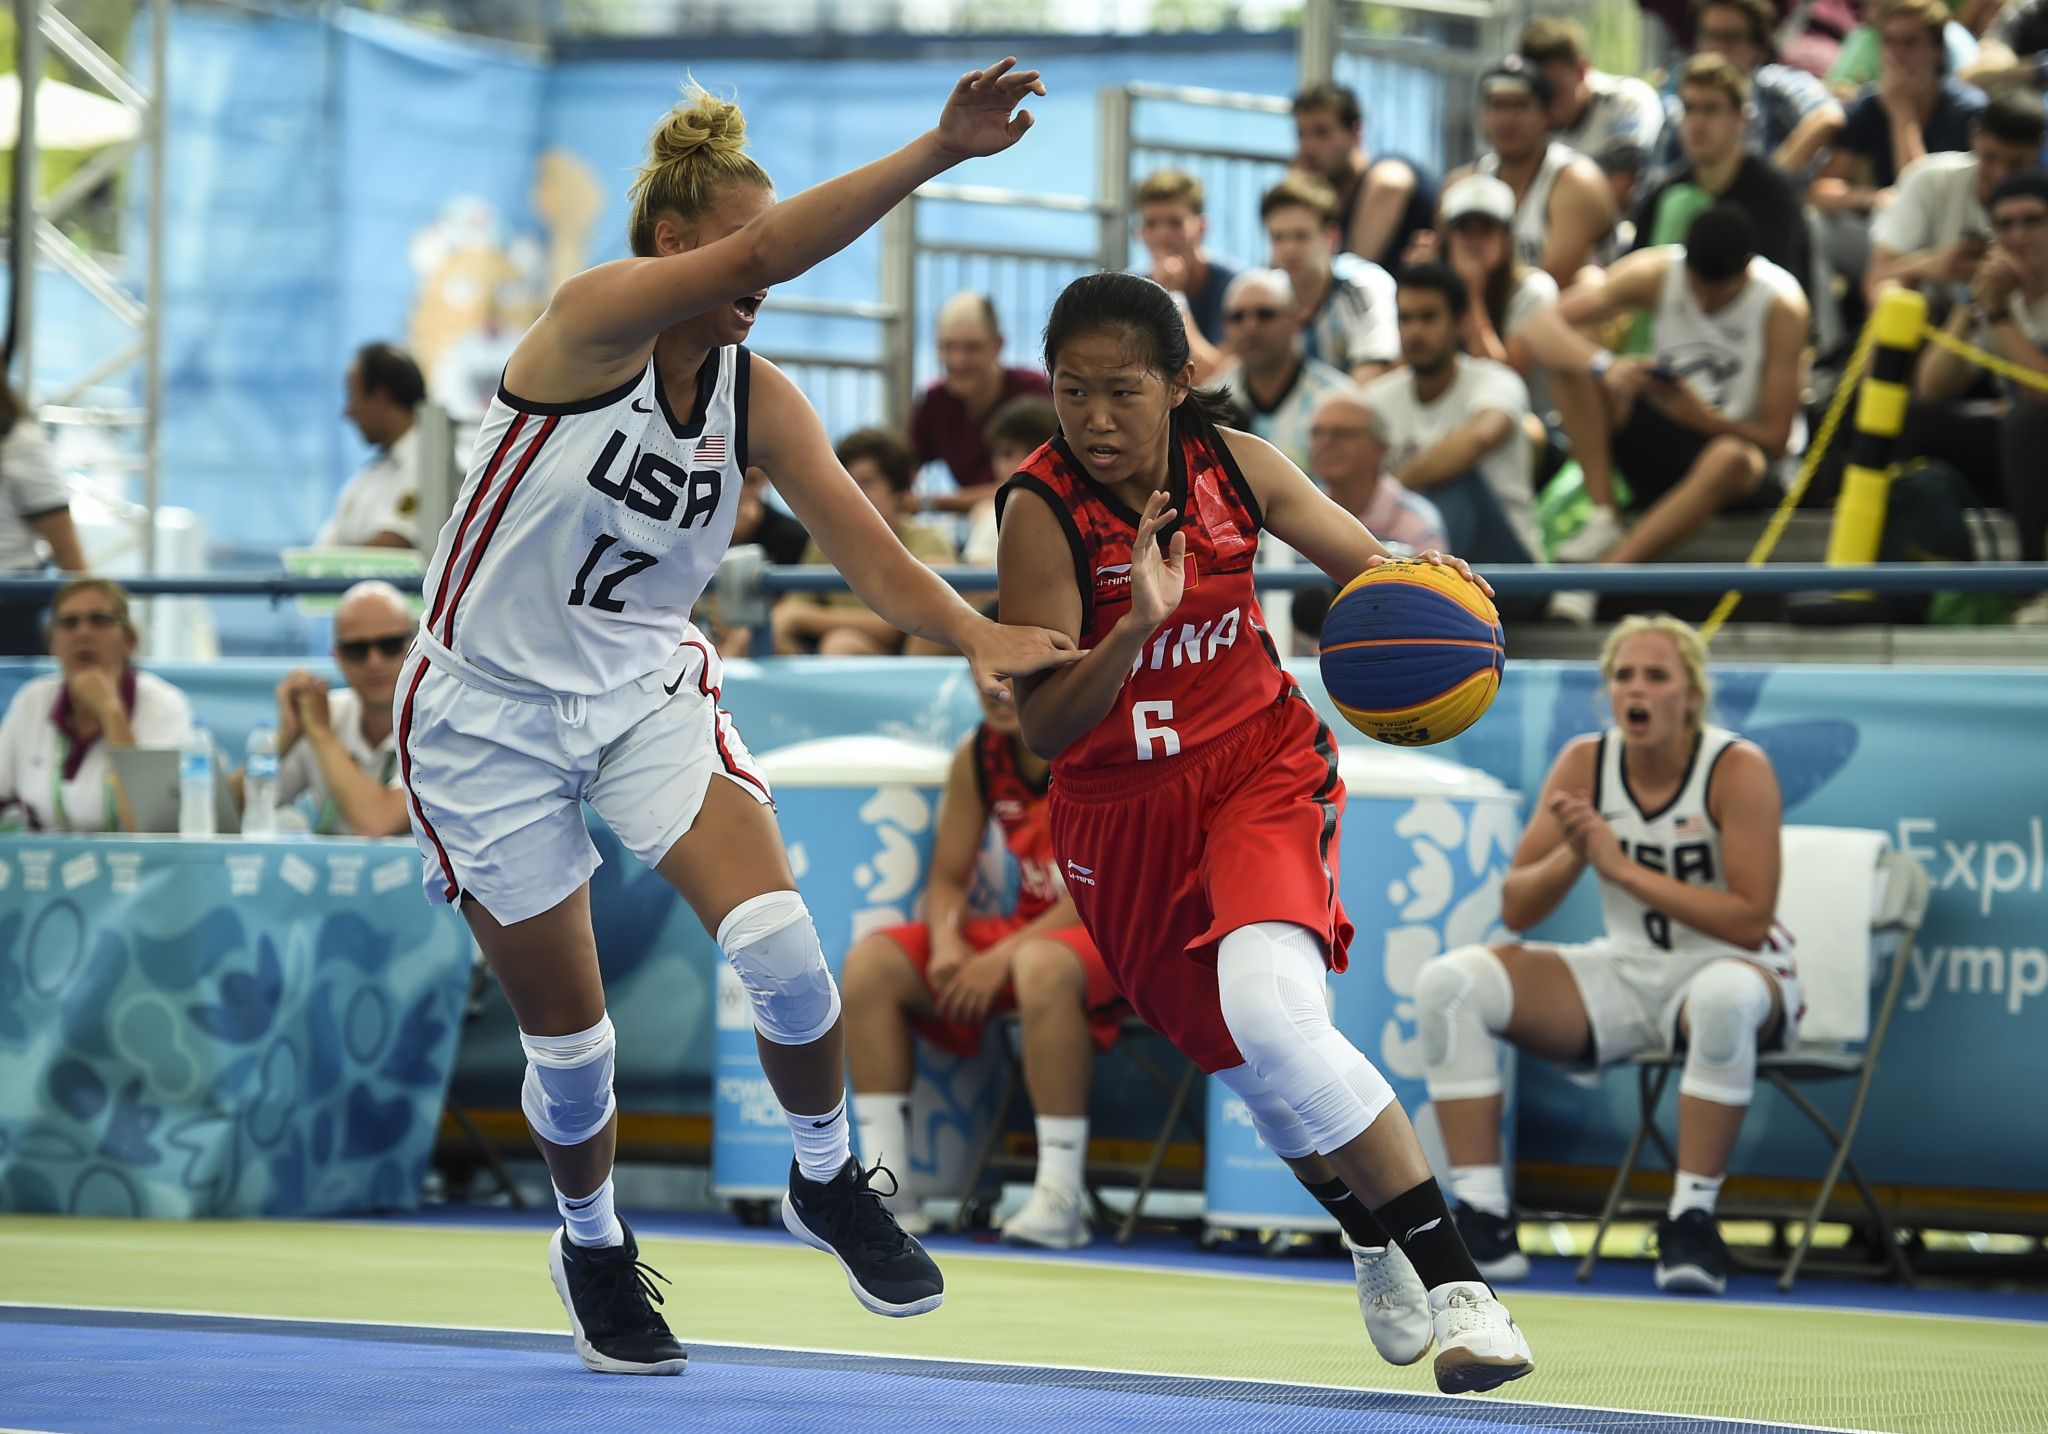 Multi-sport events have increasingly placed 3x3 basketball as part of an urban park concept ©Getty Images